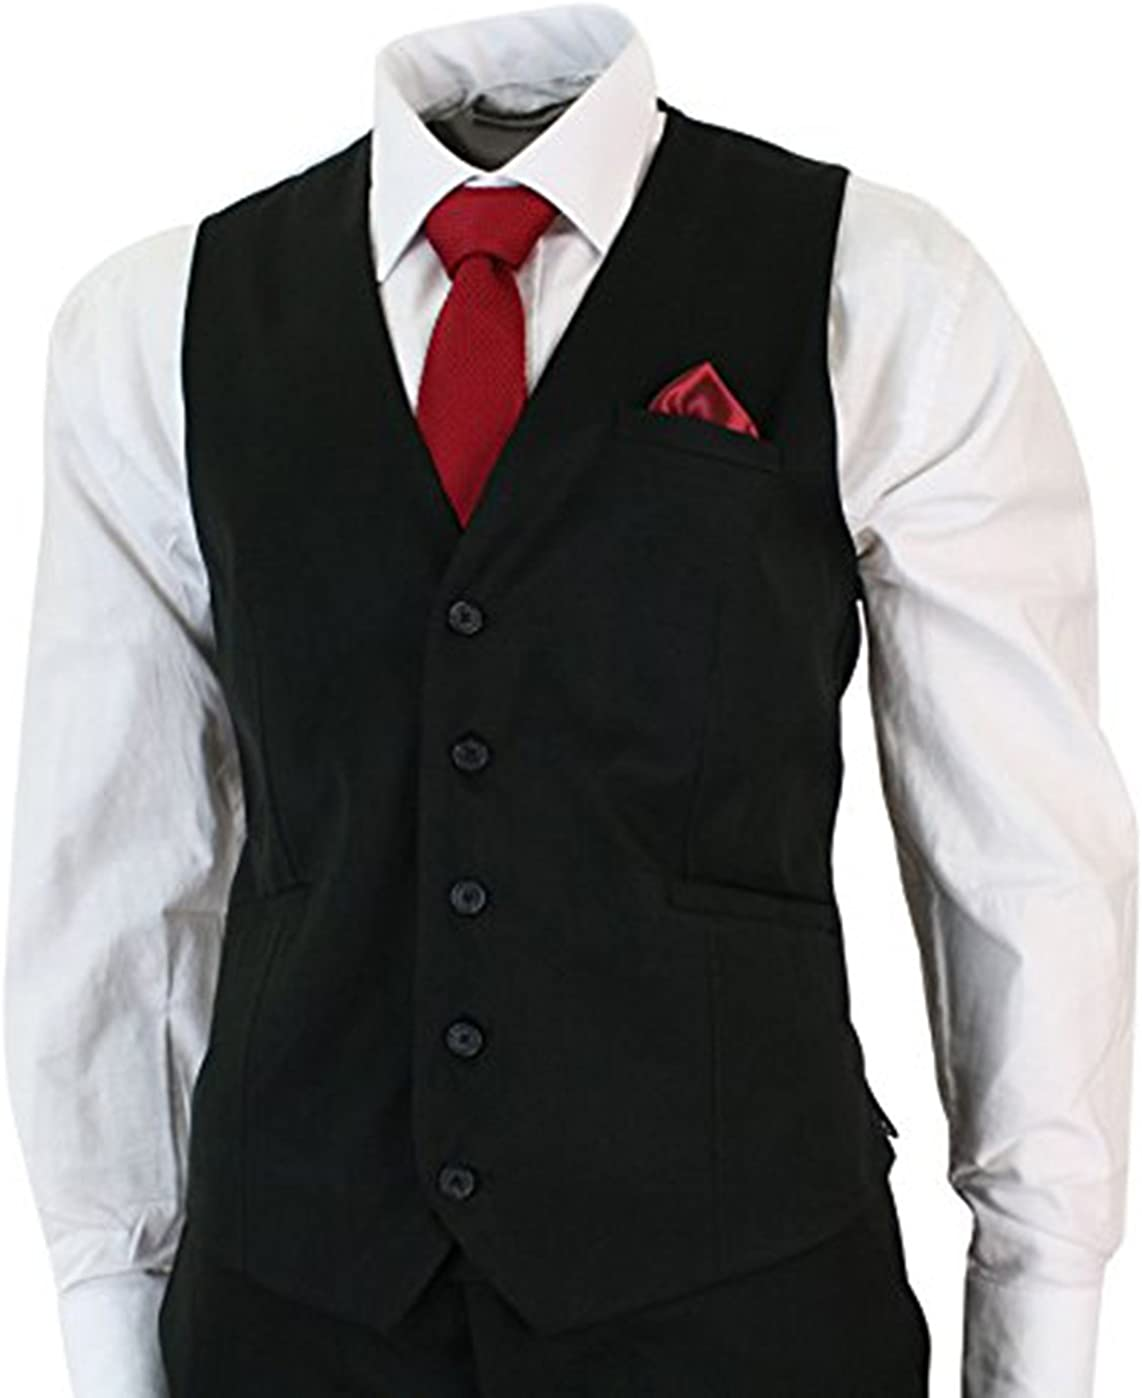 UGFashions Mens Fitted Black 3 Piece Wedding Suit